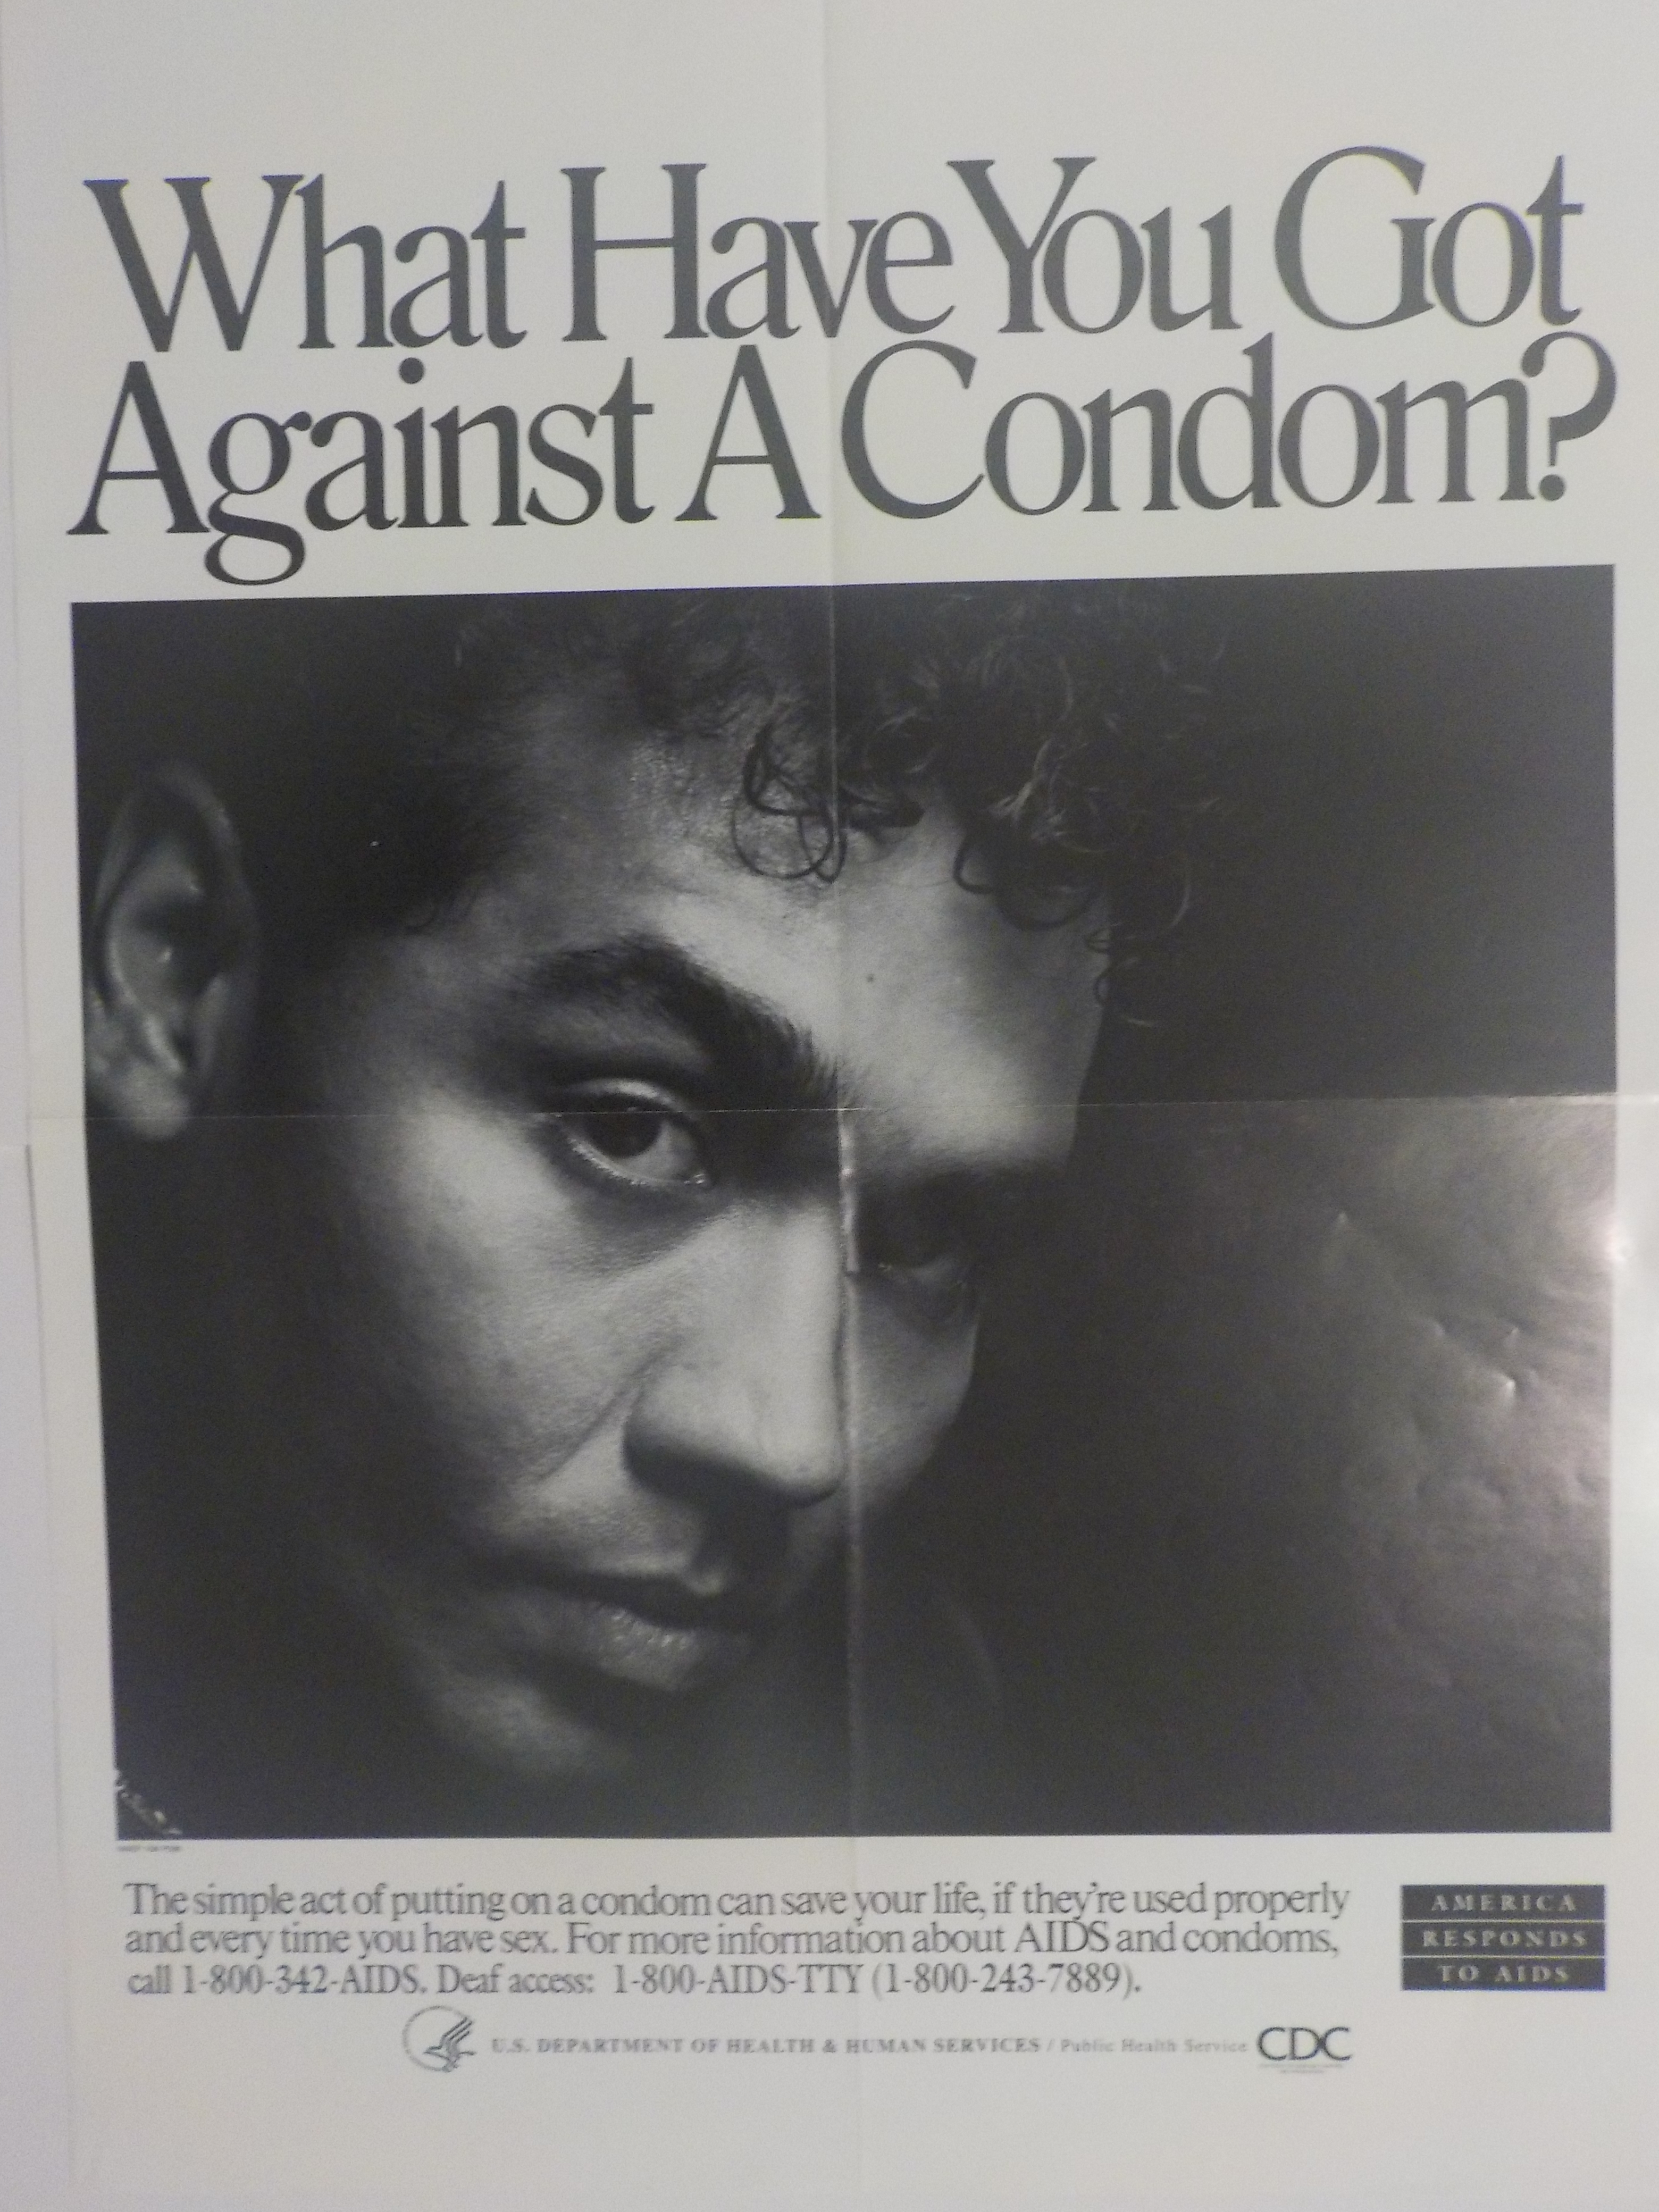 What have you got against a condom?